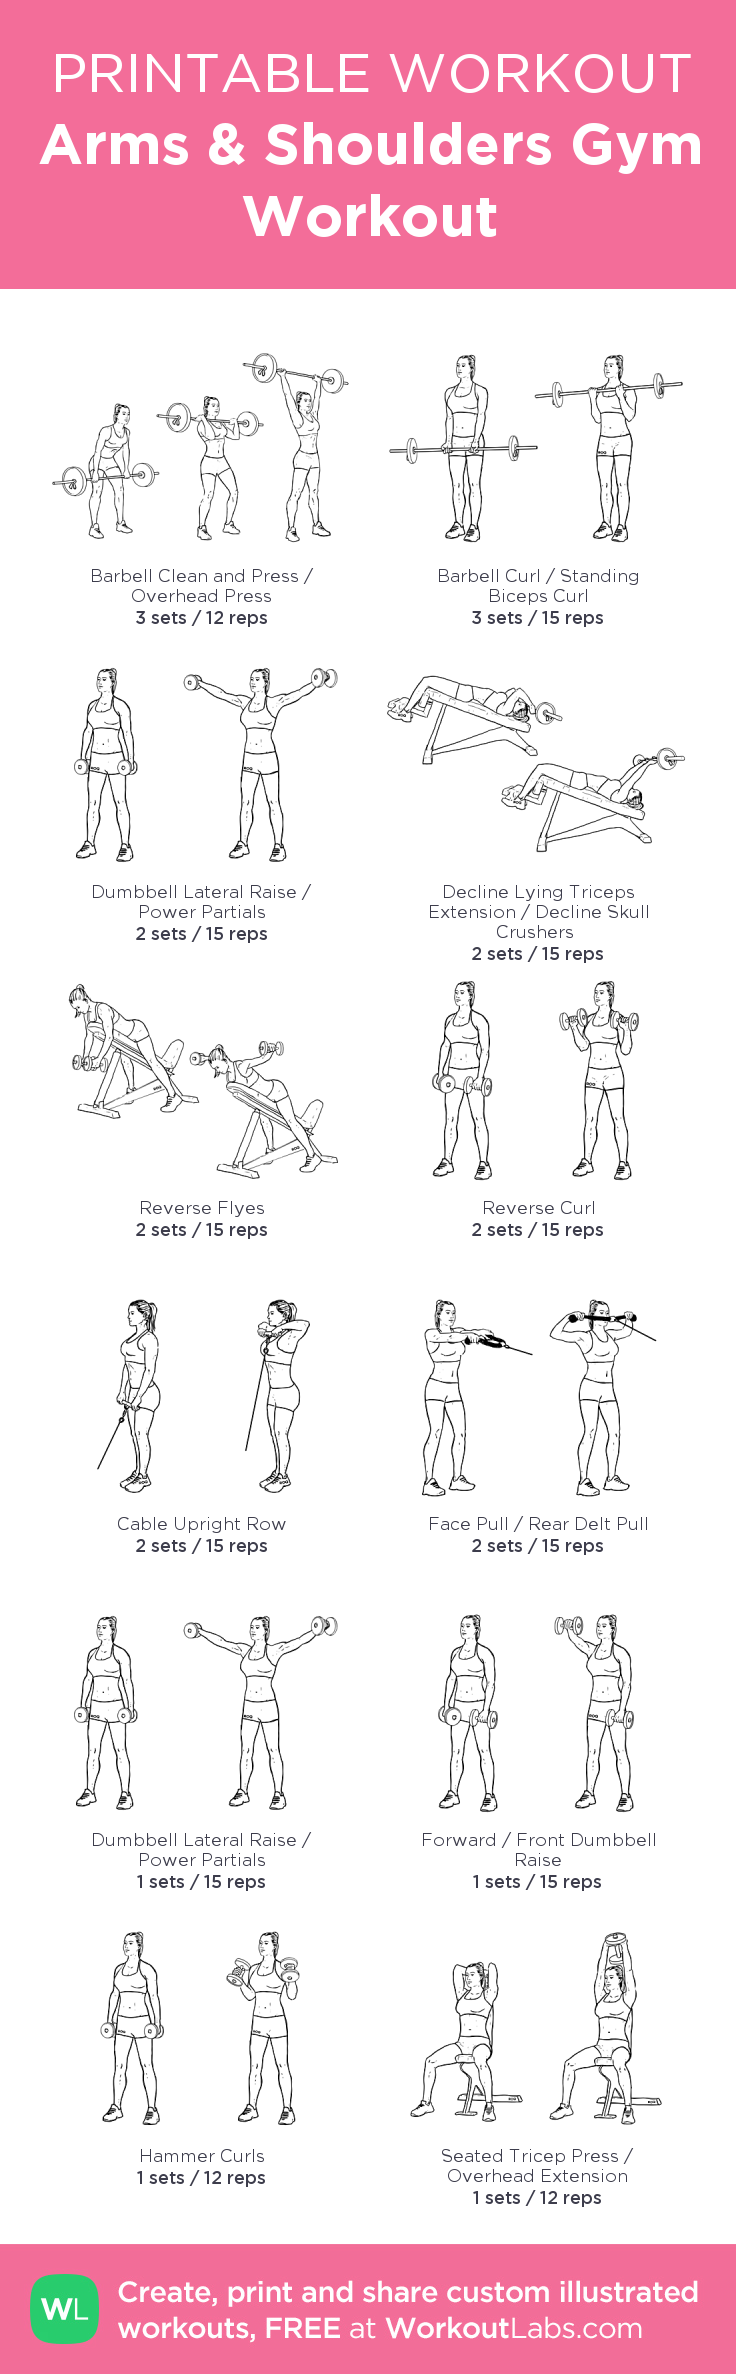 how to build my arms and chest in gym